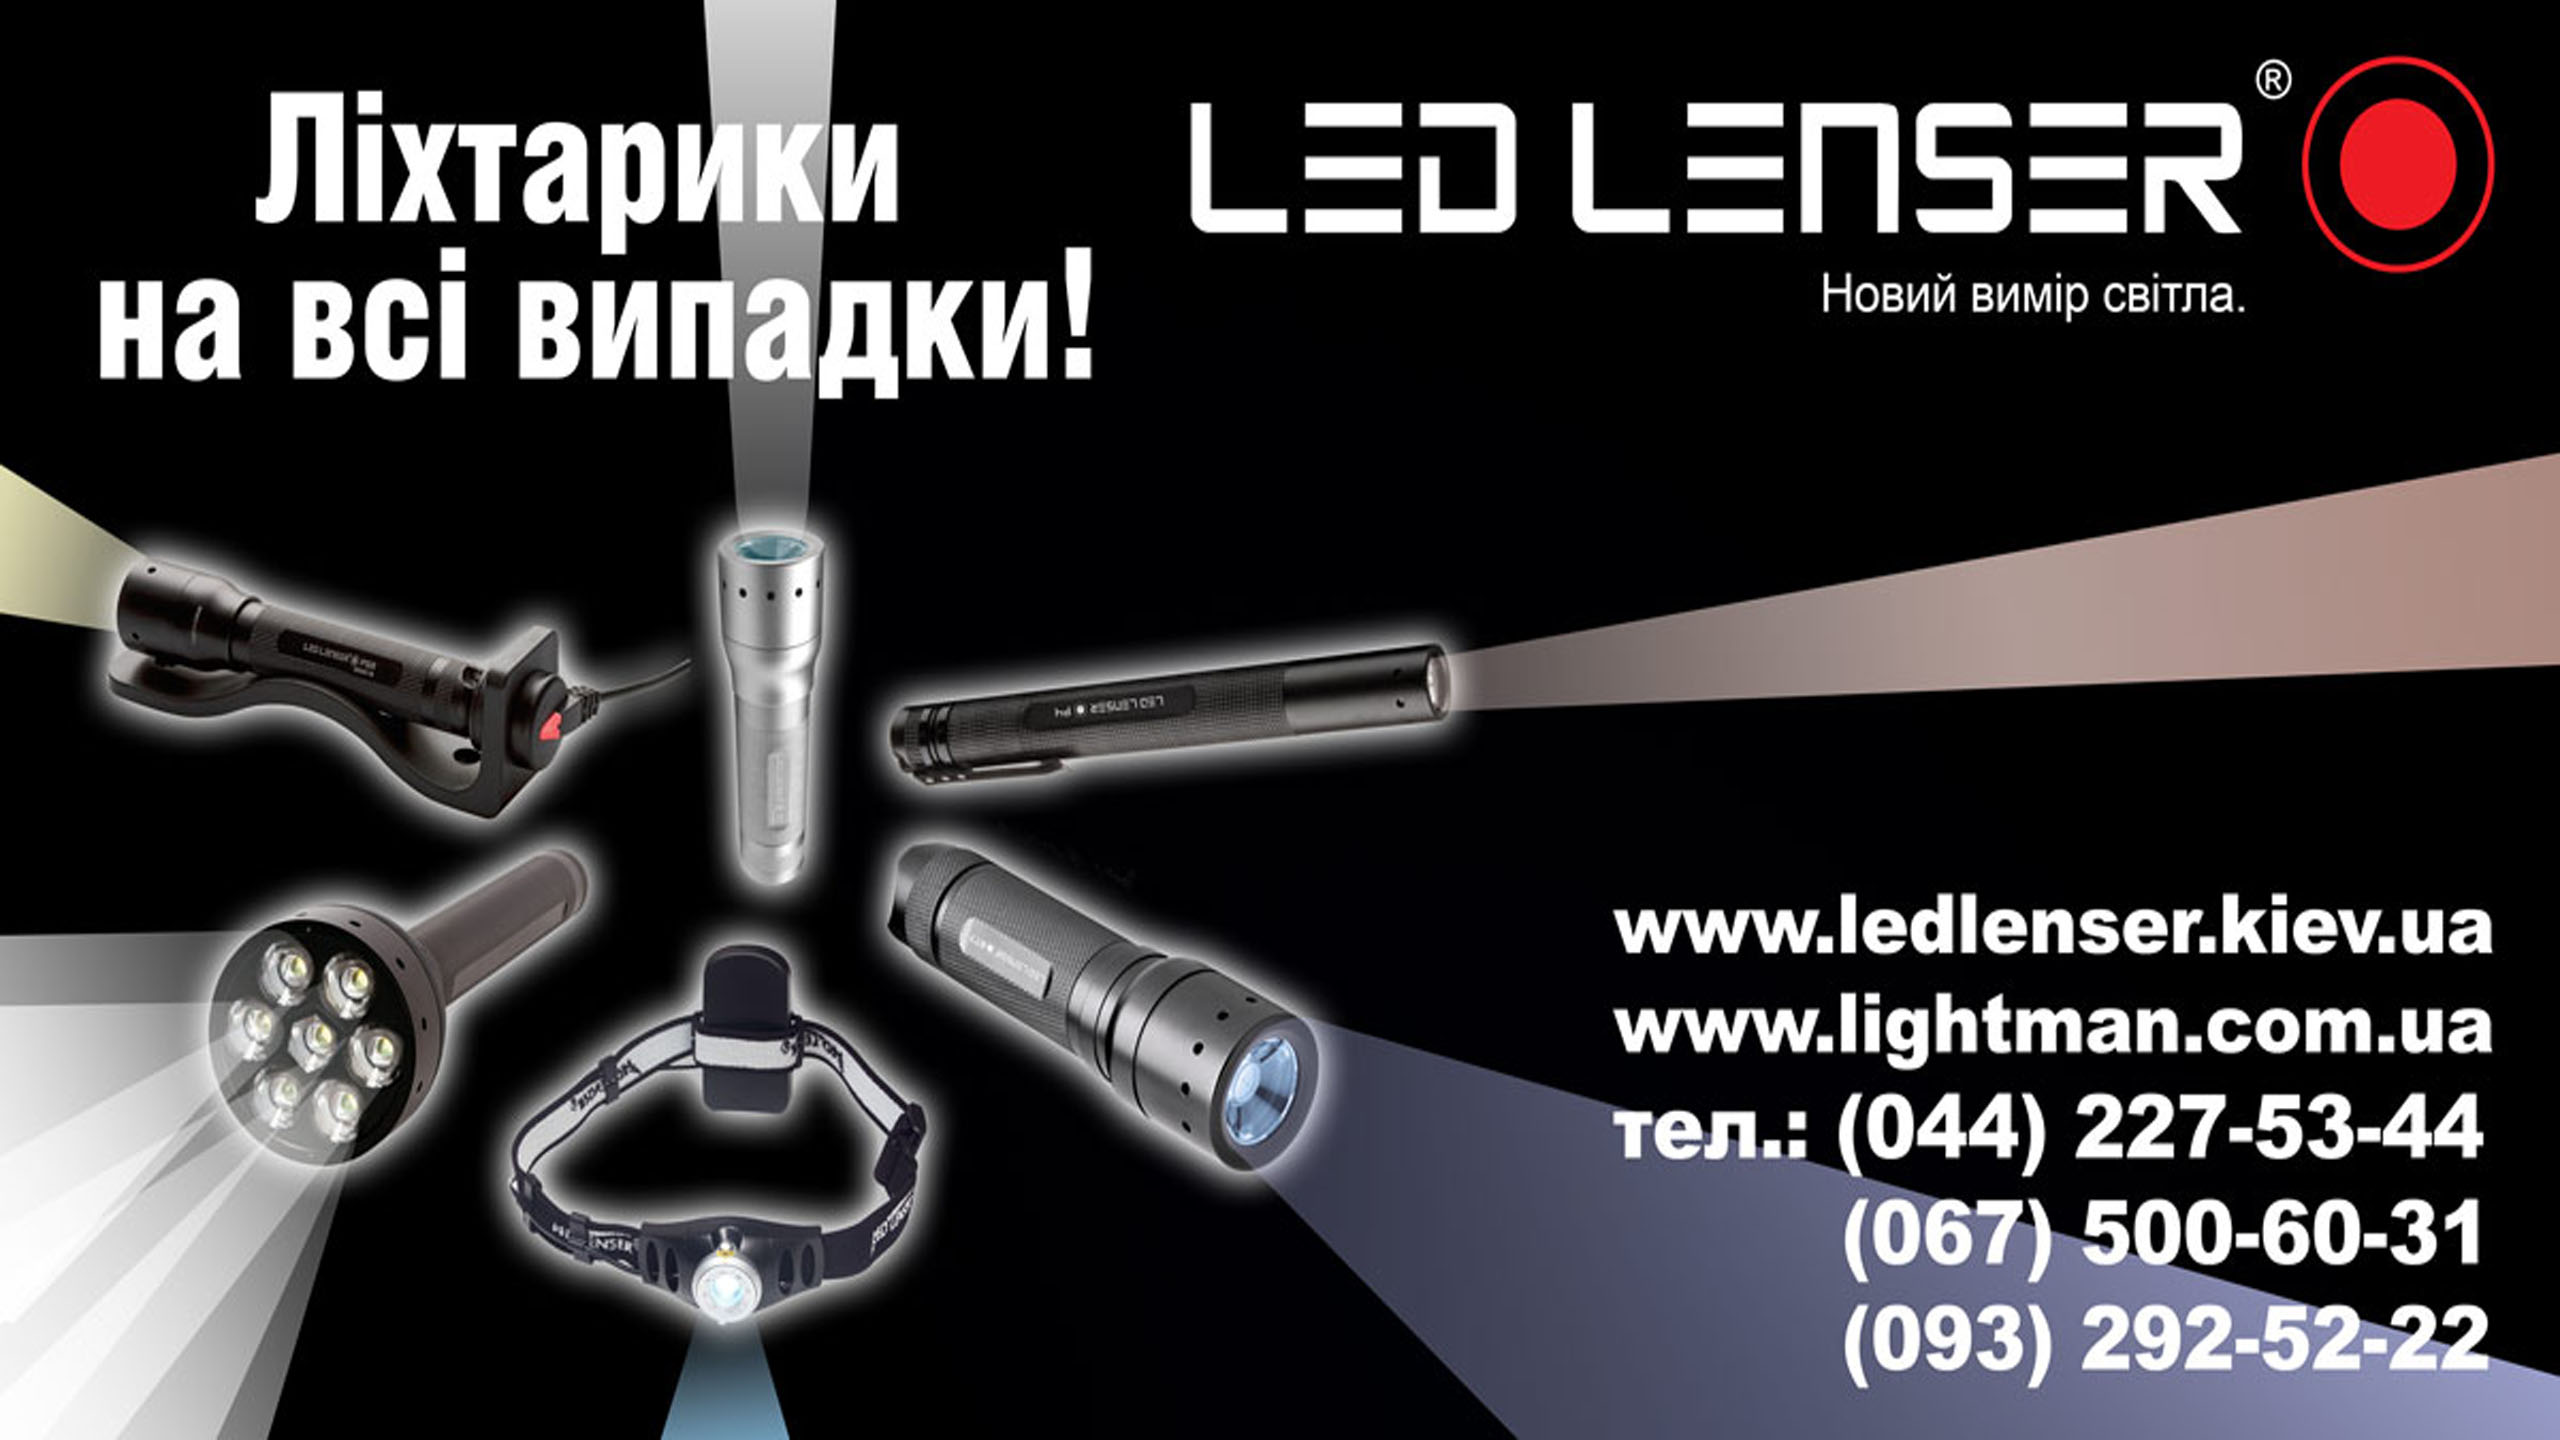 Lightman.com.ua